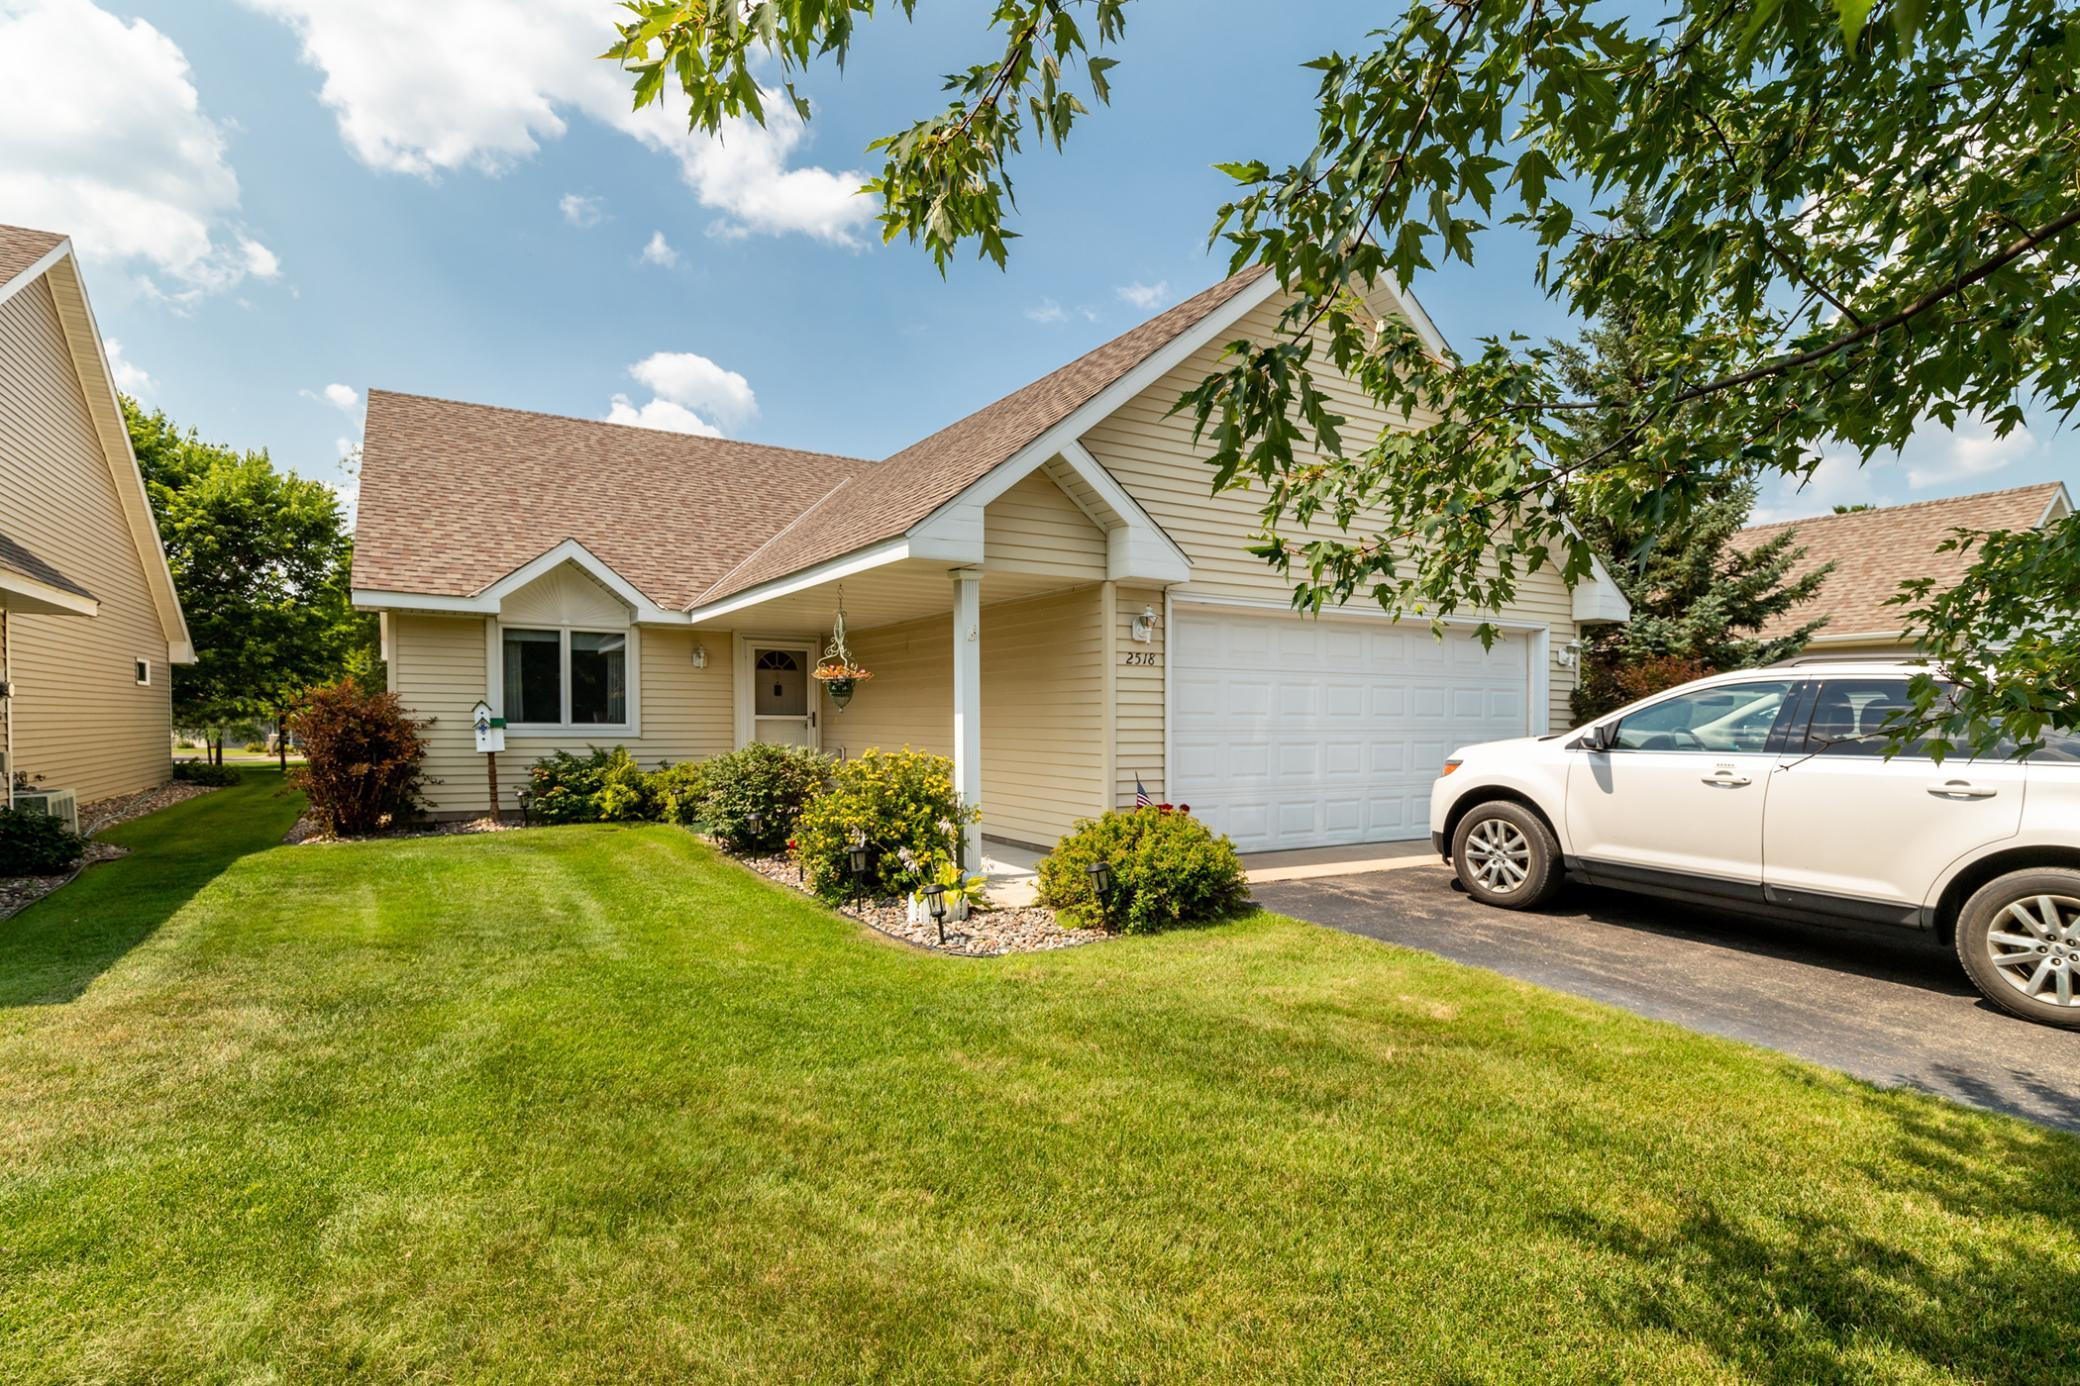 If main level, maintenance-free living is what your looking for, here it is! This 2 bed/2bath home features open floor plan, sunroom, outdoor patio, walking trails throughout the development, attached garage and more! You won't want to miss this one!